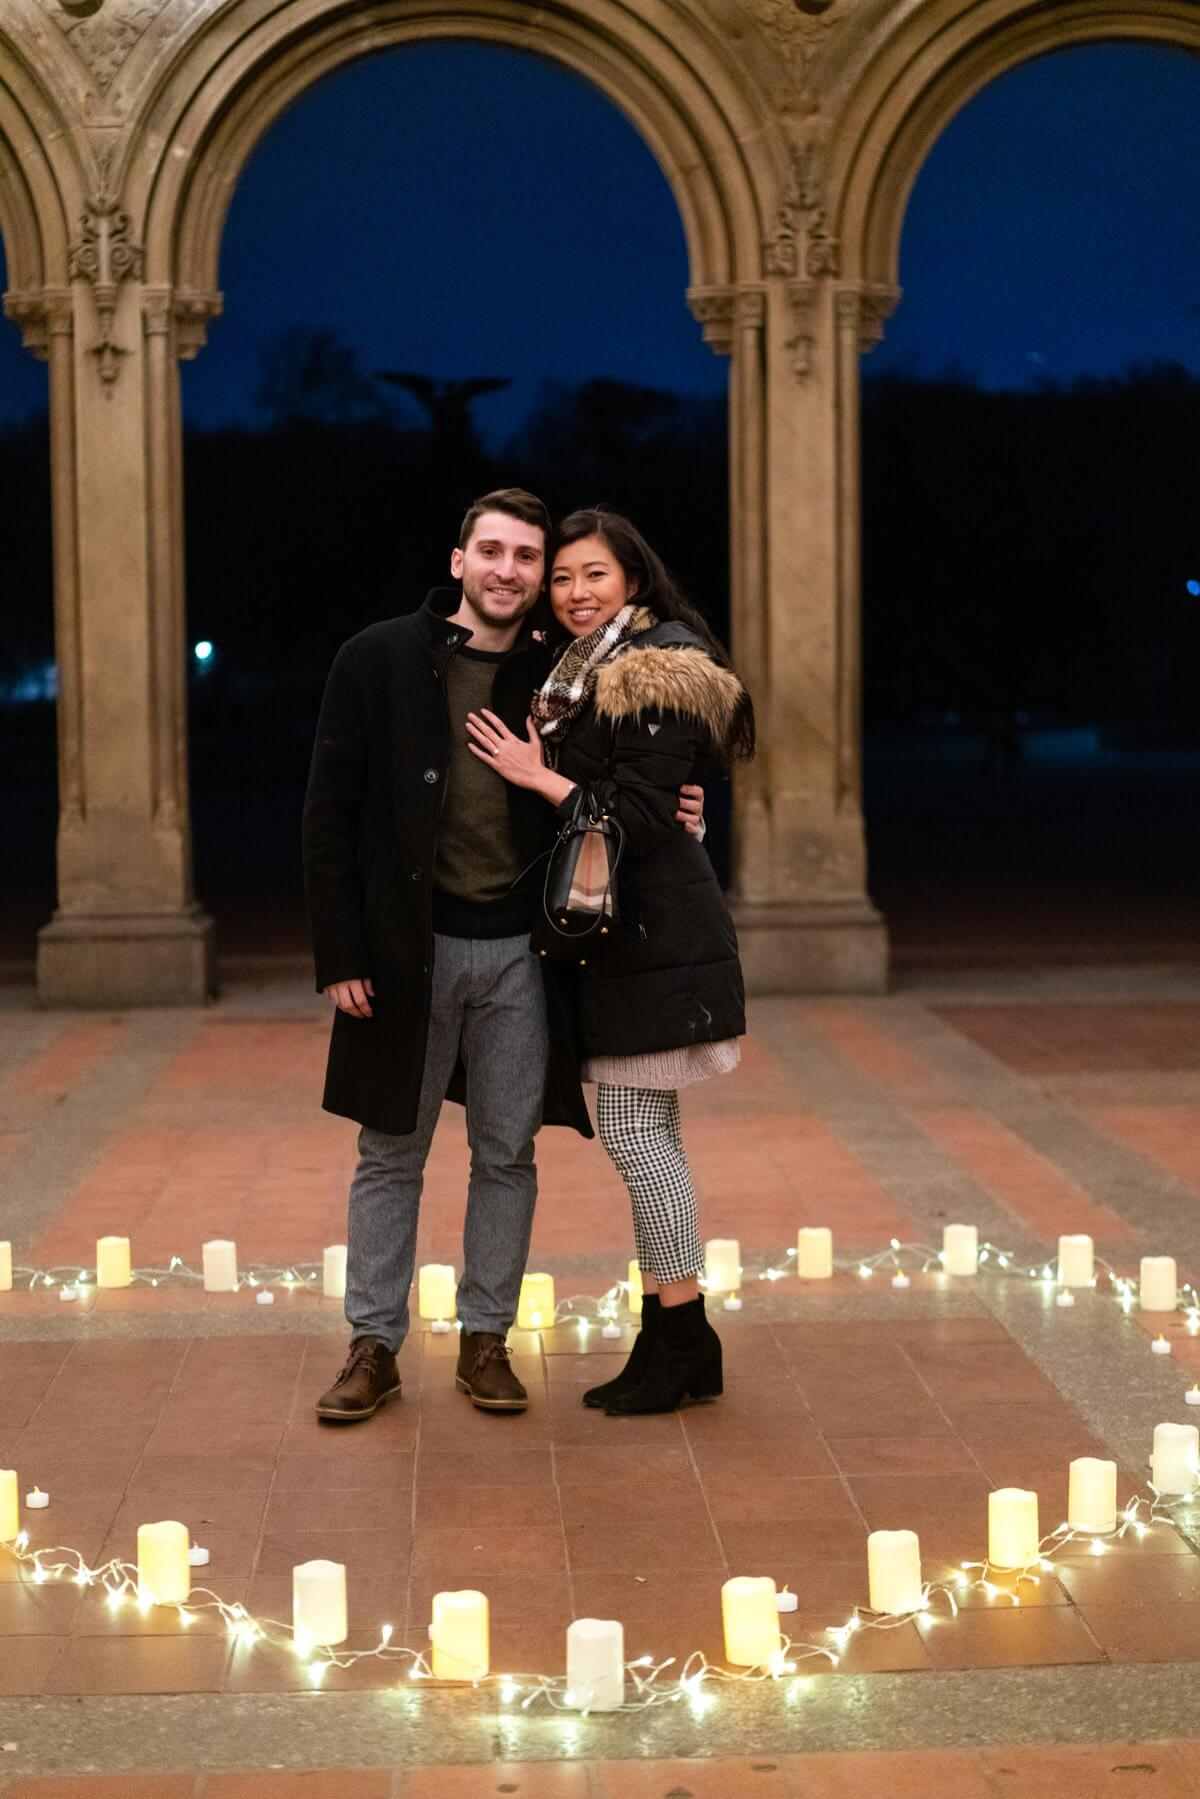 Photo 5 Marriage Proposal at Bethesda Terrace in Central Park. | VladLeto